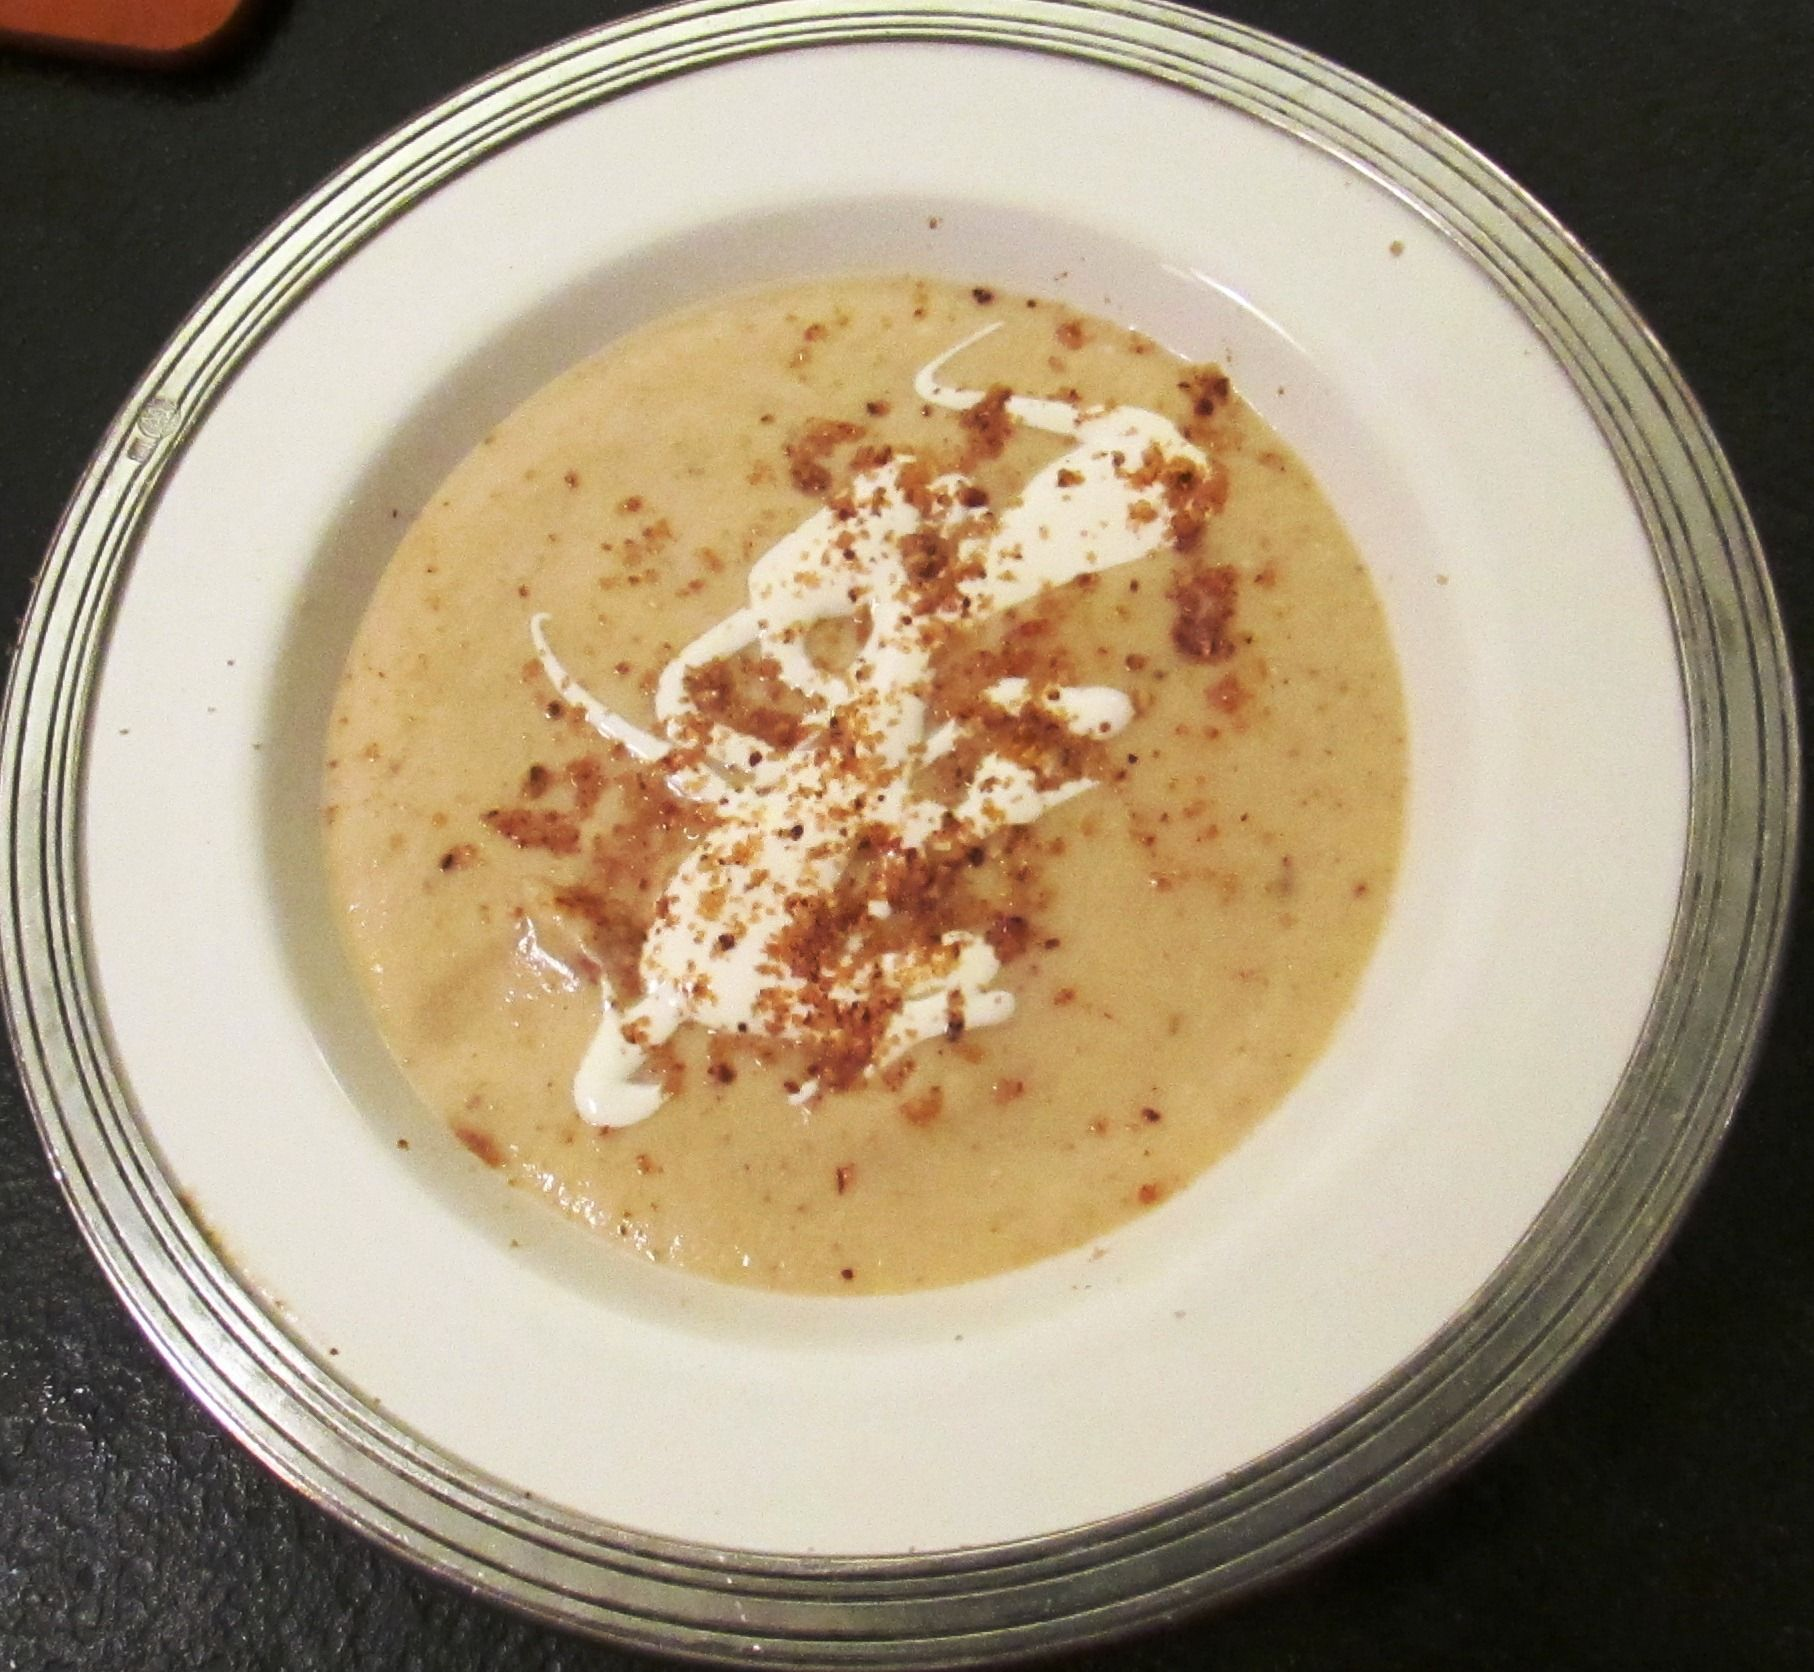 Cream of Cauliflower soup with bitter almonds - served for a holiday meal and it was great!